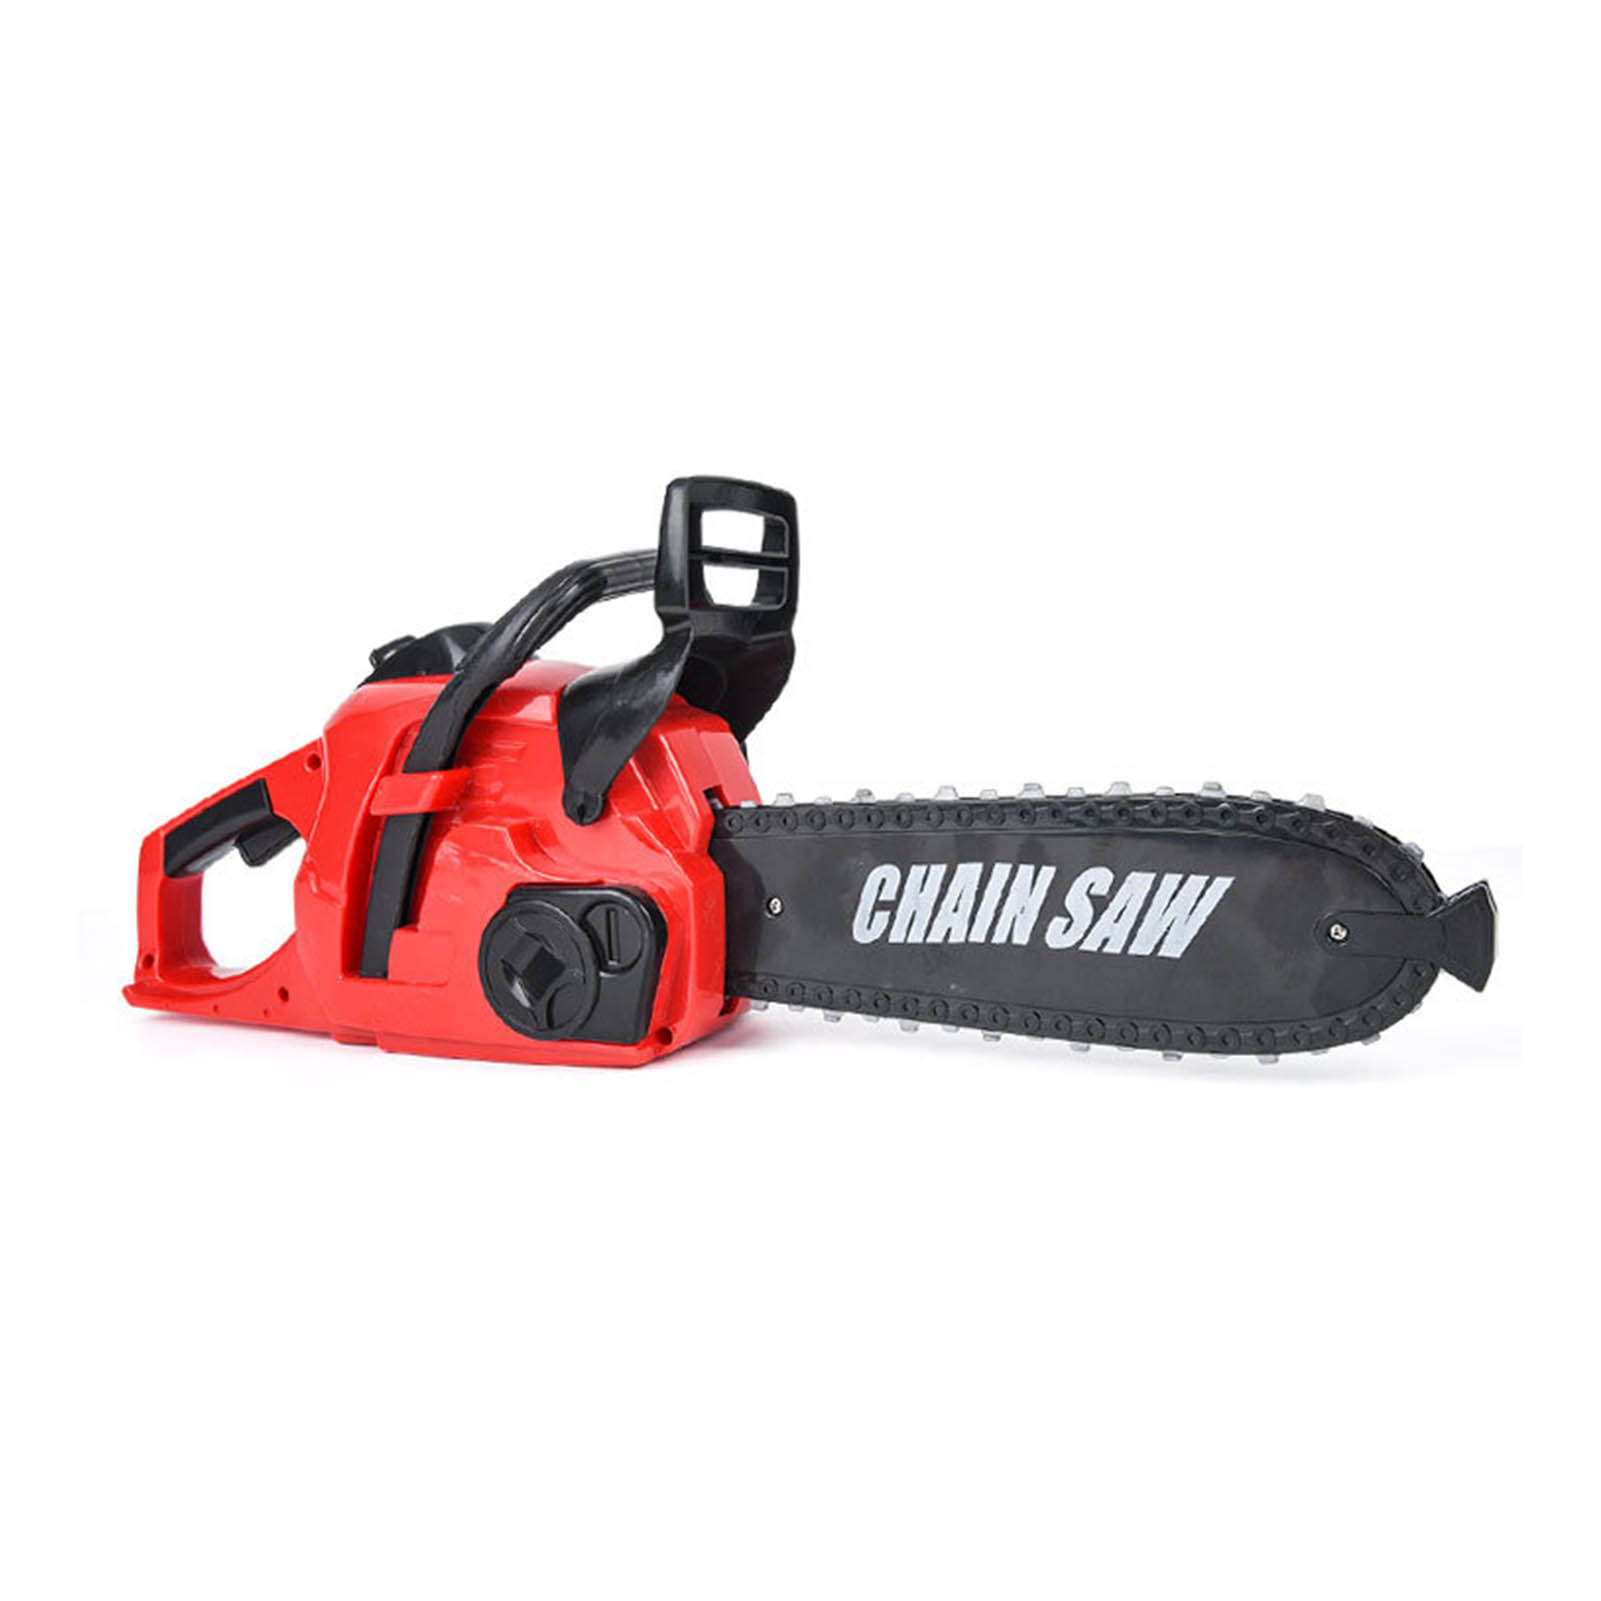 Electric Chainsaw Toy Kids Construction Tool With Realistic Sound Pretend Play Toys Children Gift For Boys Children D50